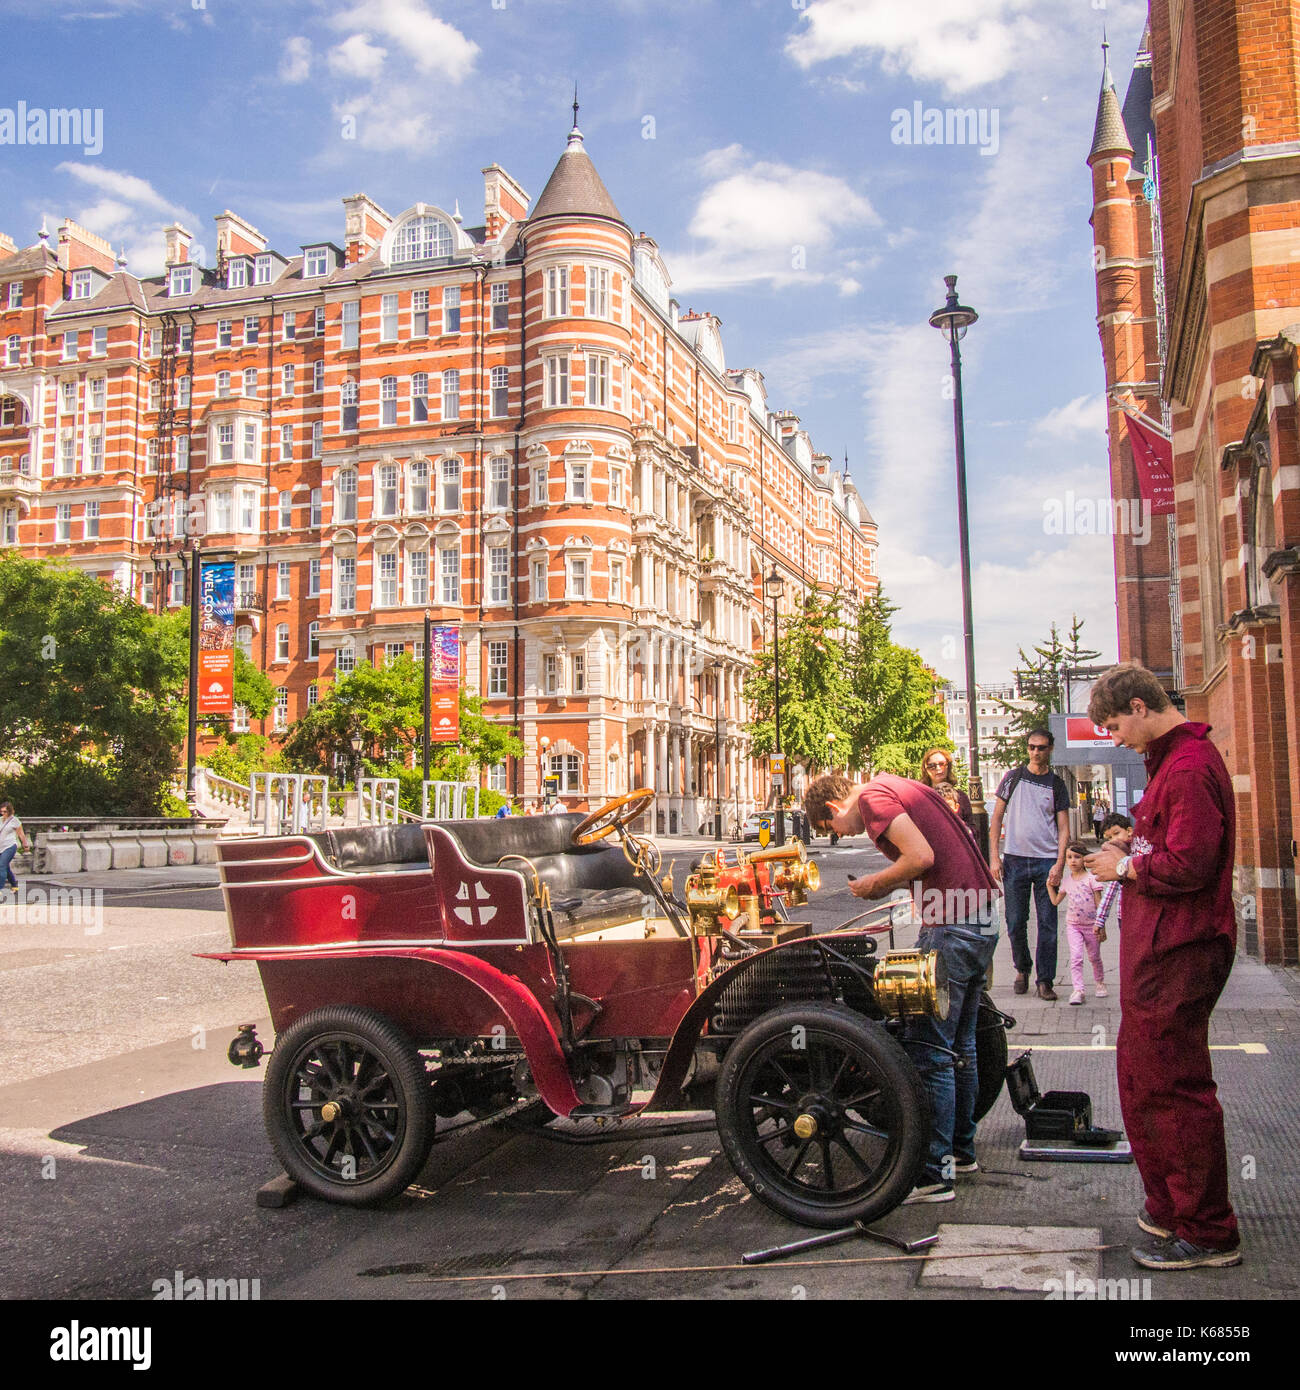 Mechanics working on a classic car in Kensington, London Stock Photo